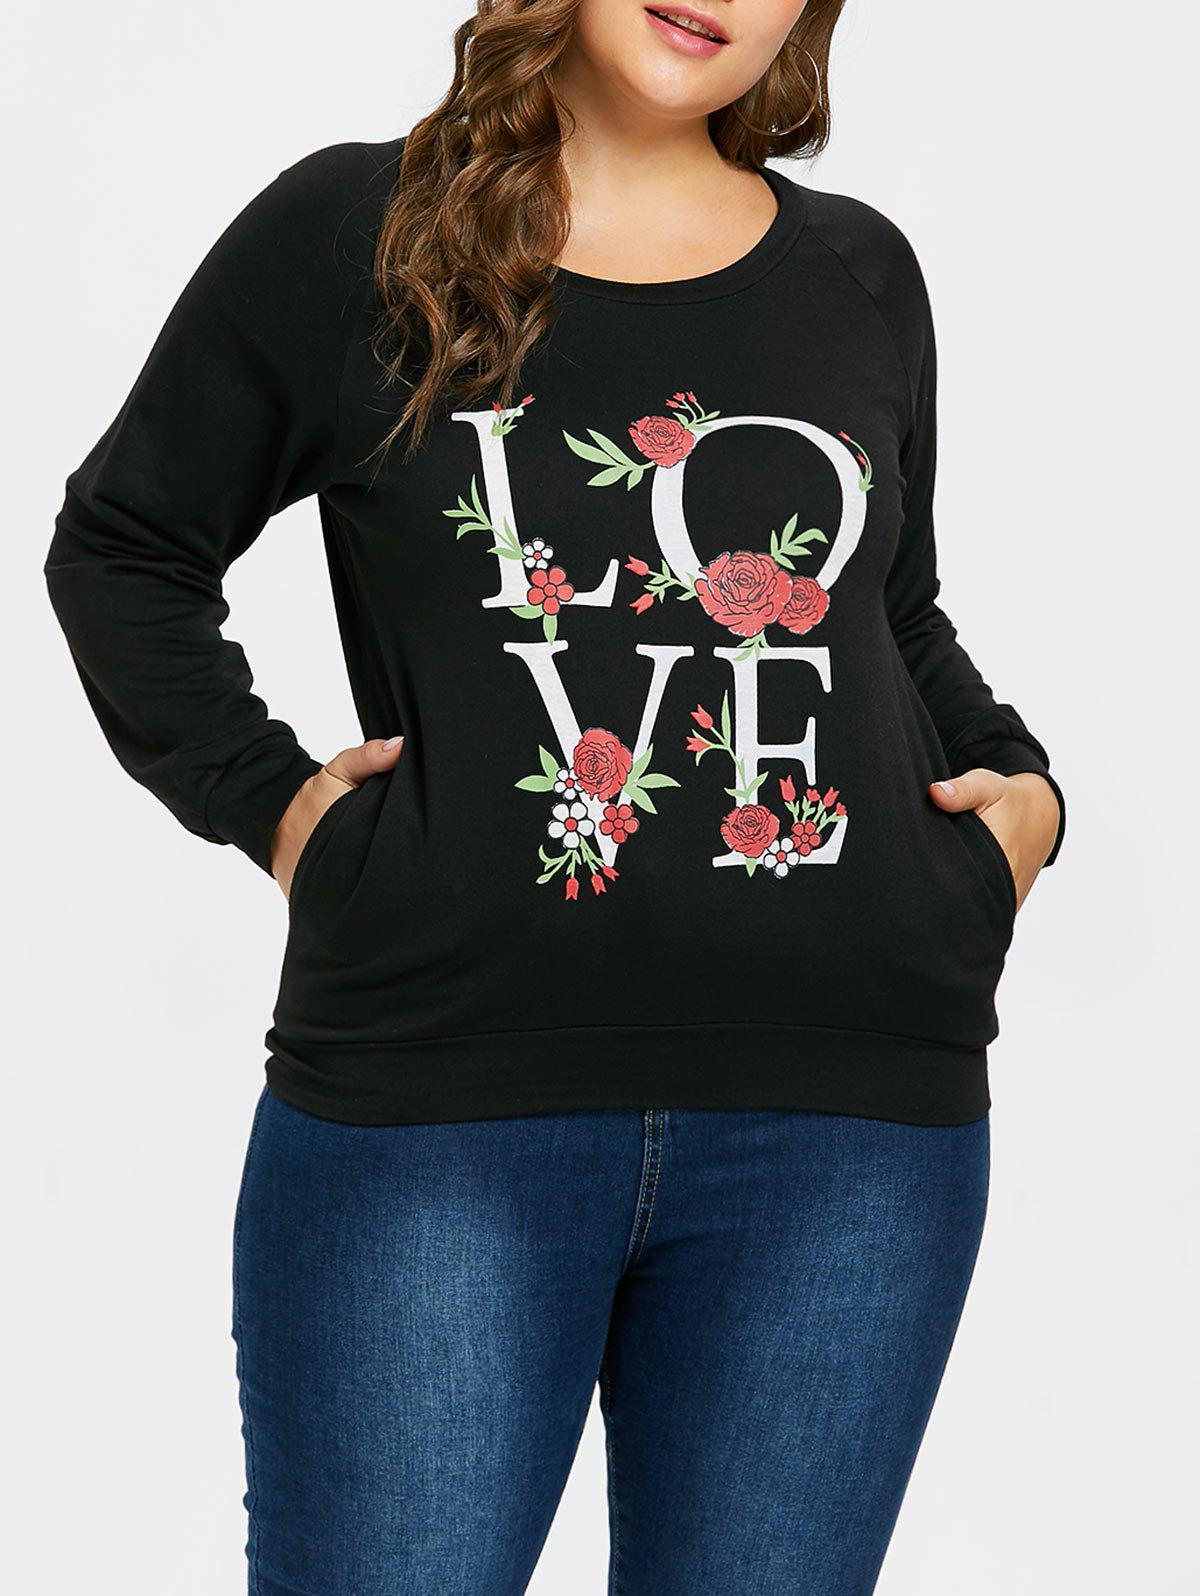 Fashion Plus Size Love Rose Print Sweatshirt